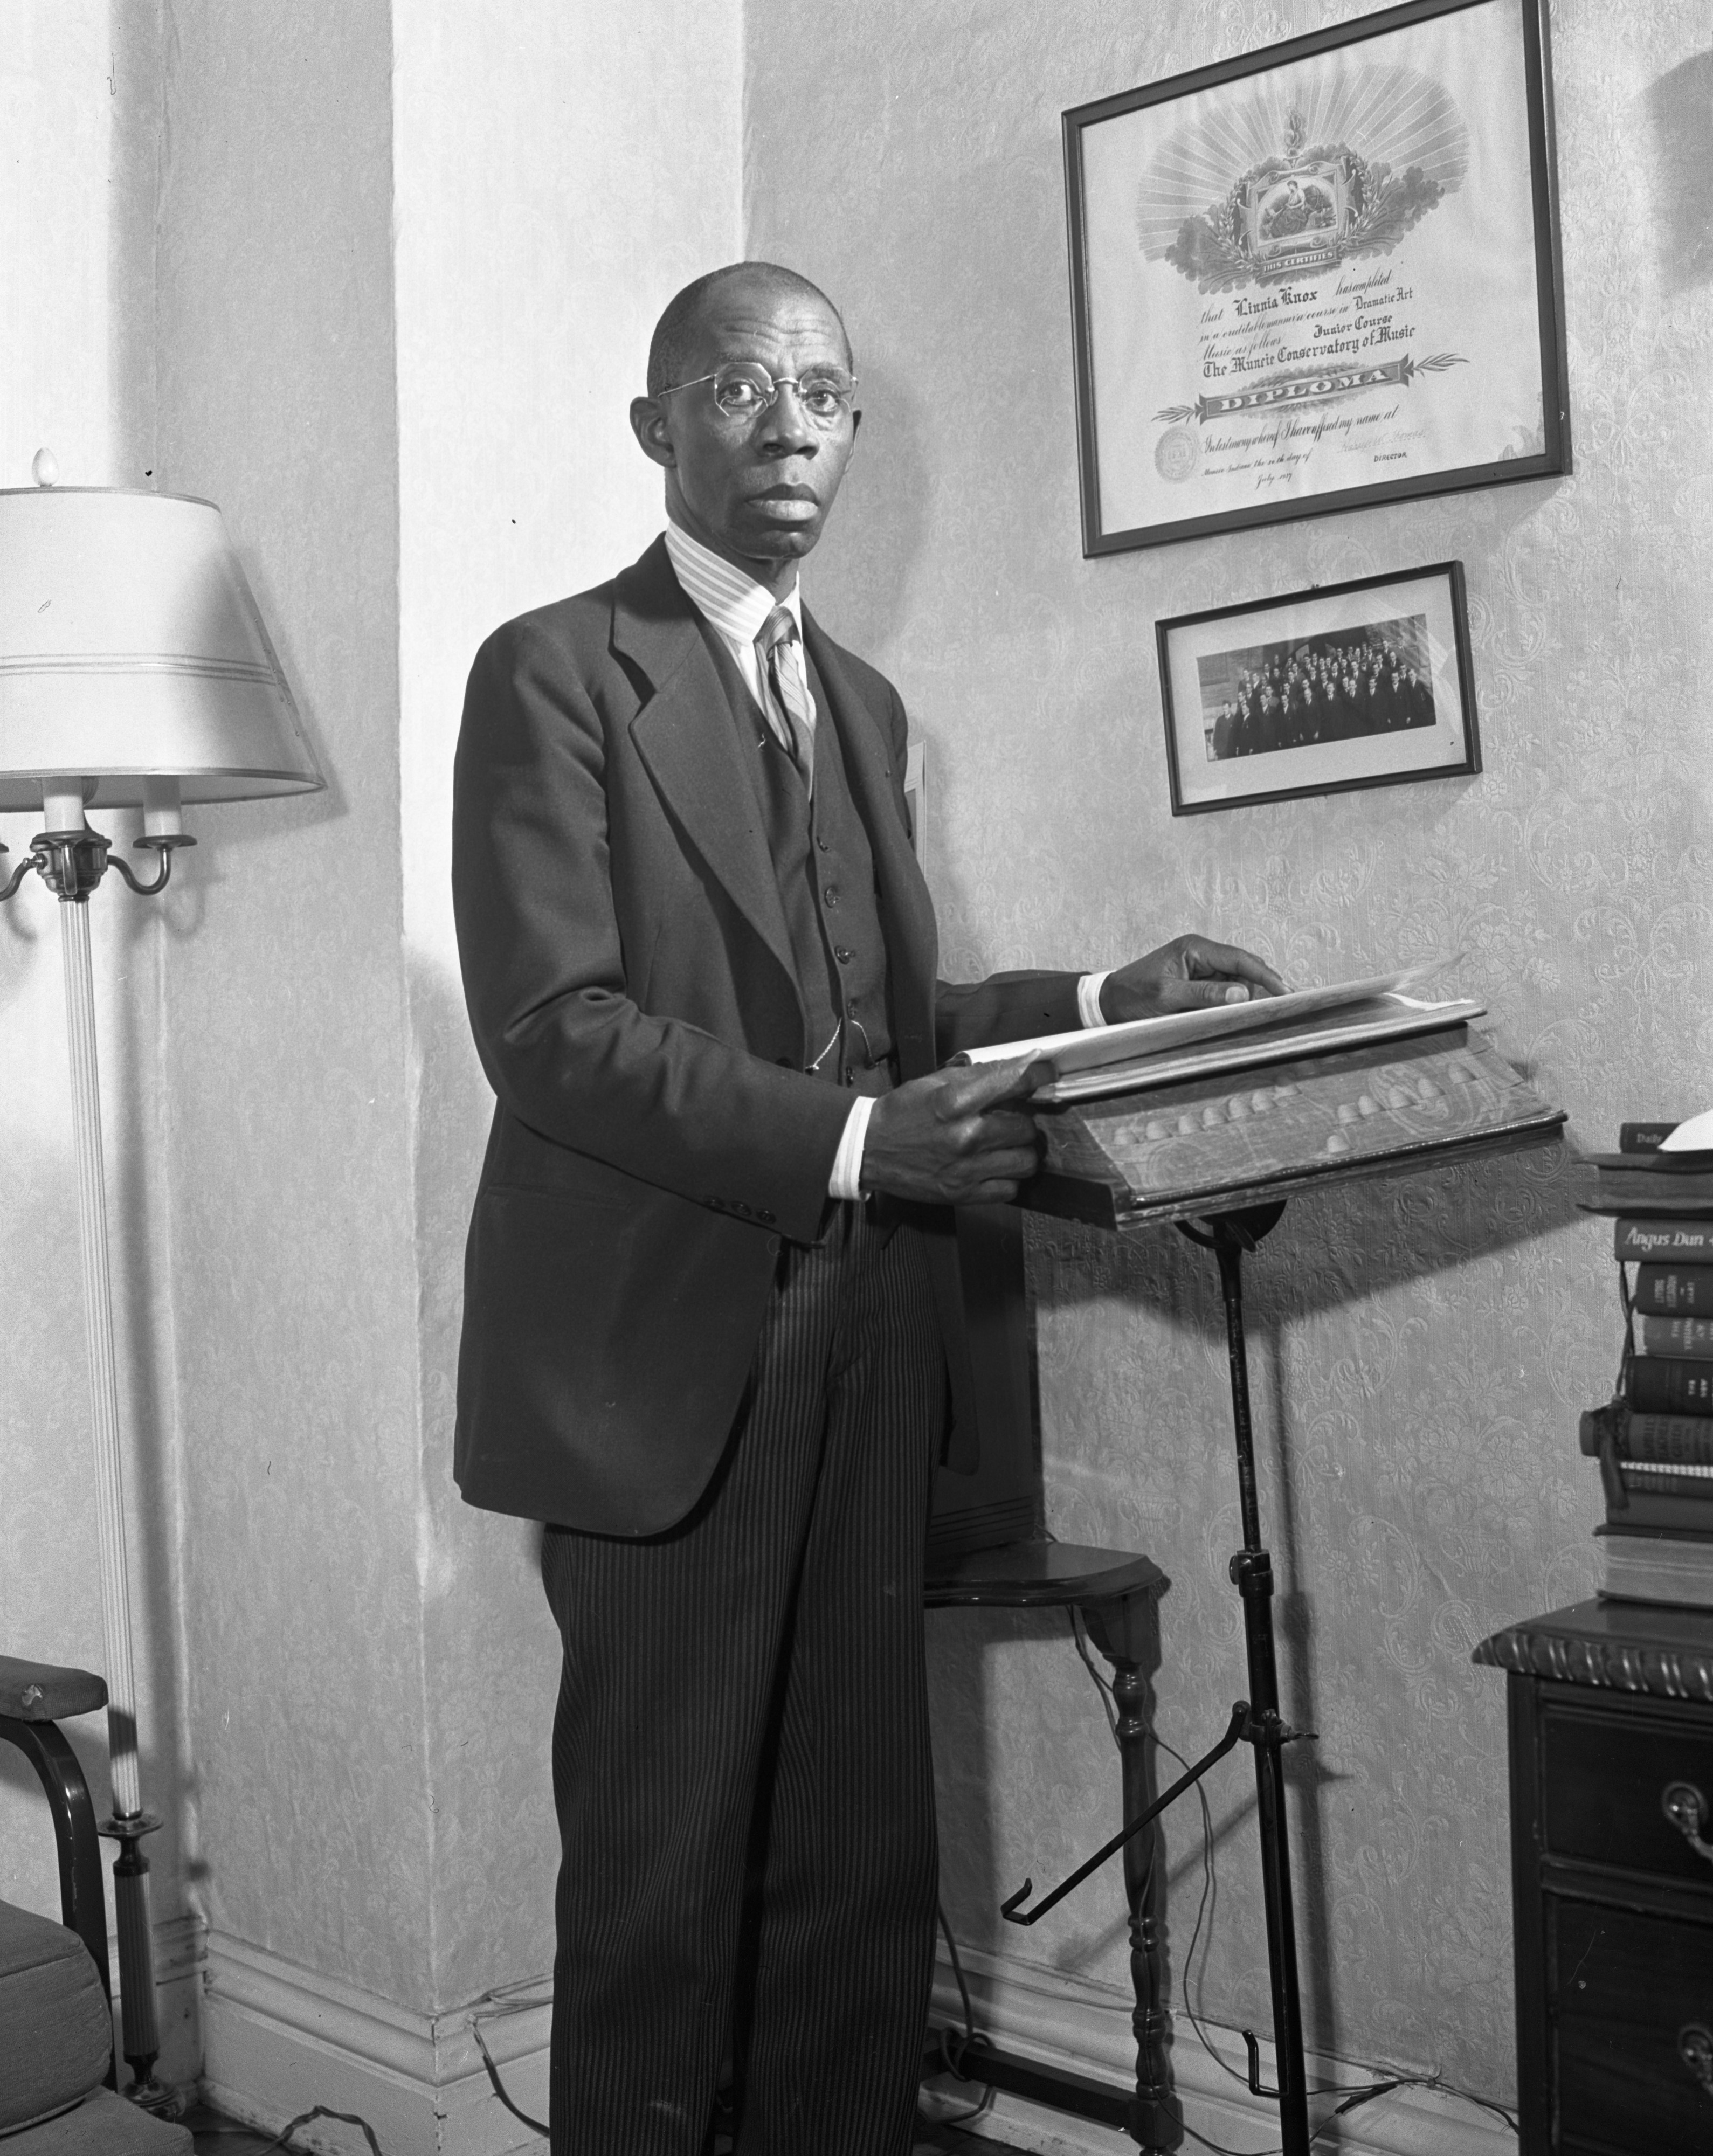 Rev. Charles W. Carpenter, 2nd Baptist Church, during the Fifth Bond Drive, June 1944 image